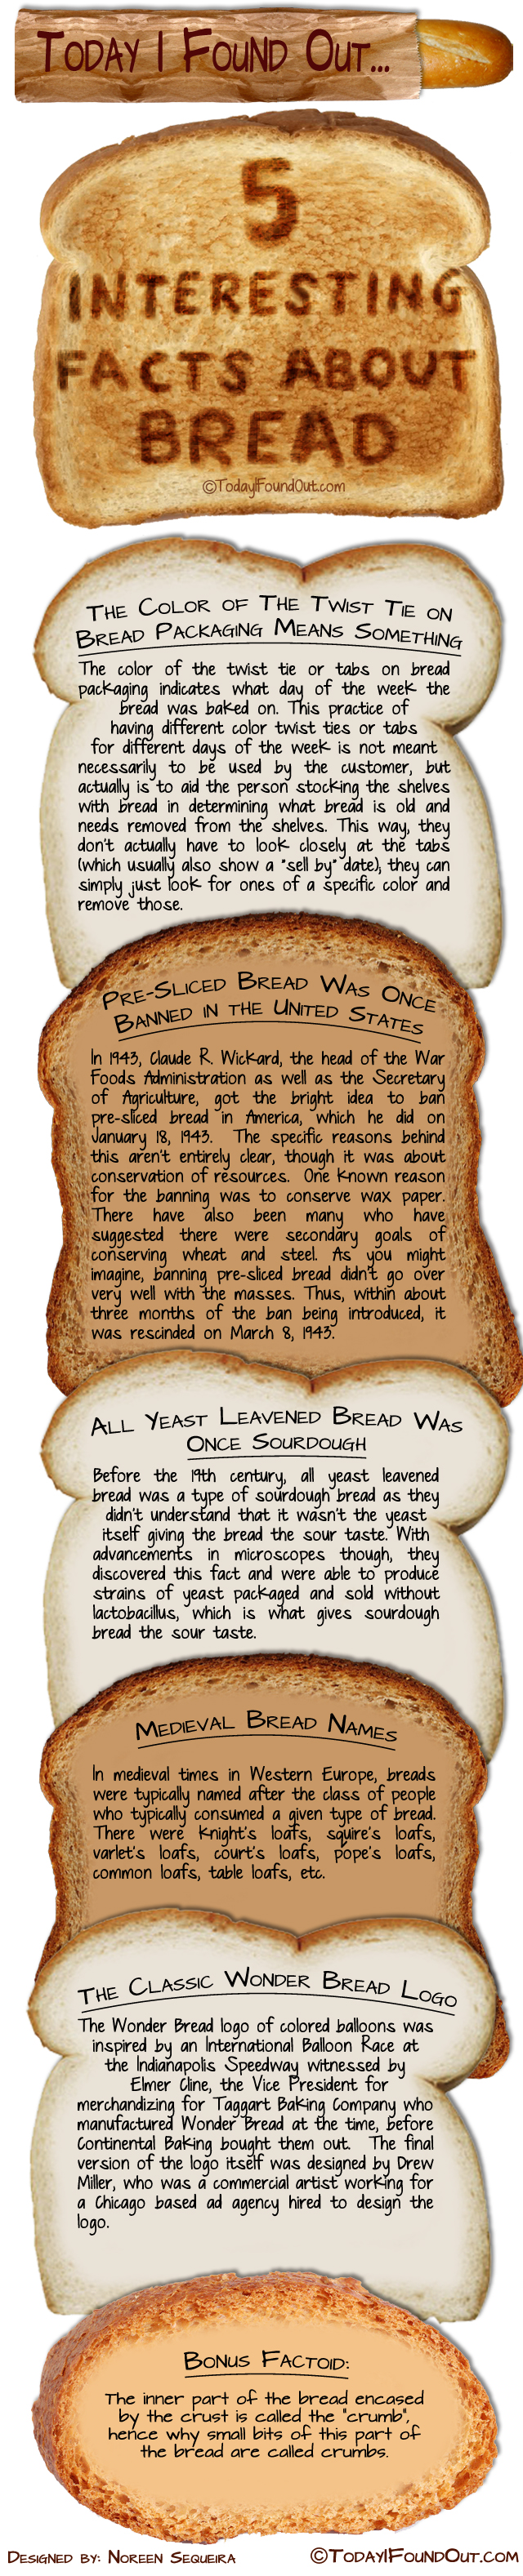 Bread Facts Infographic